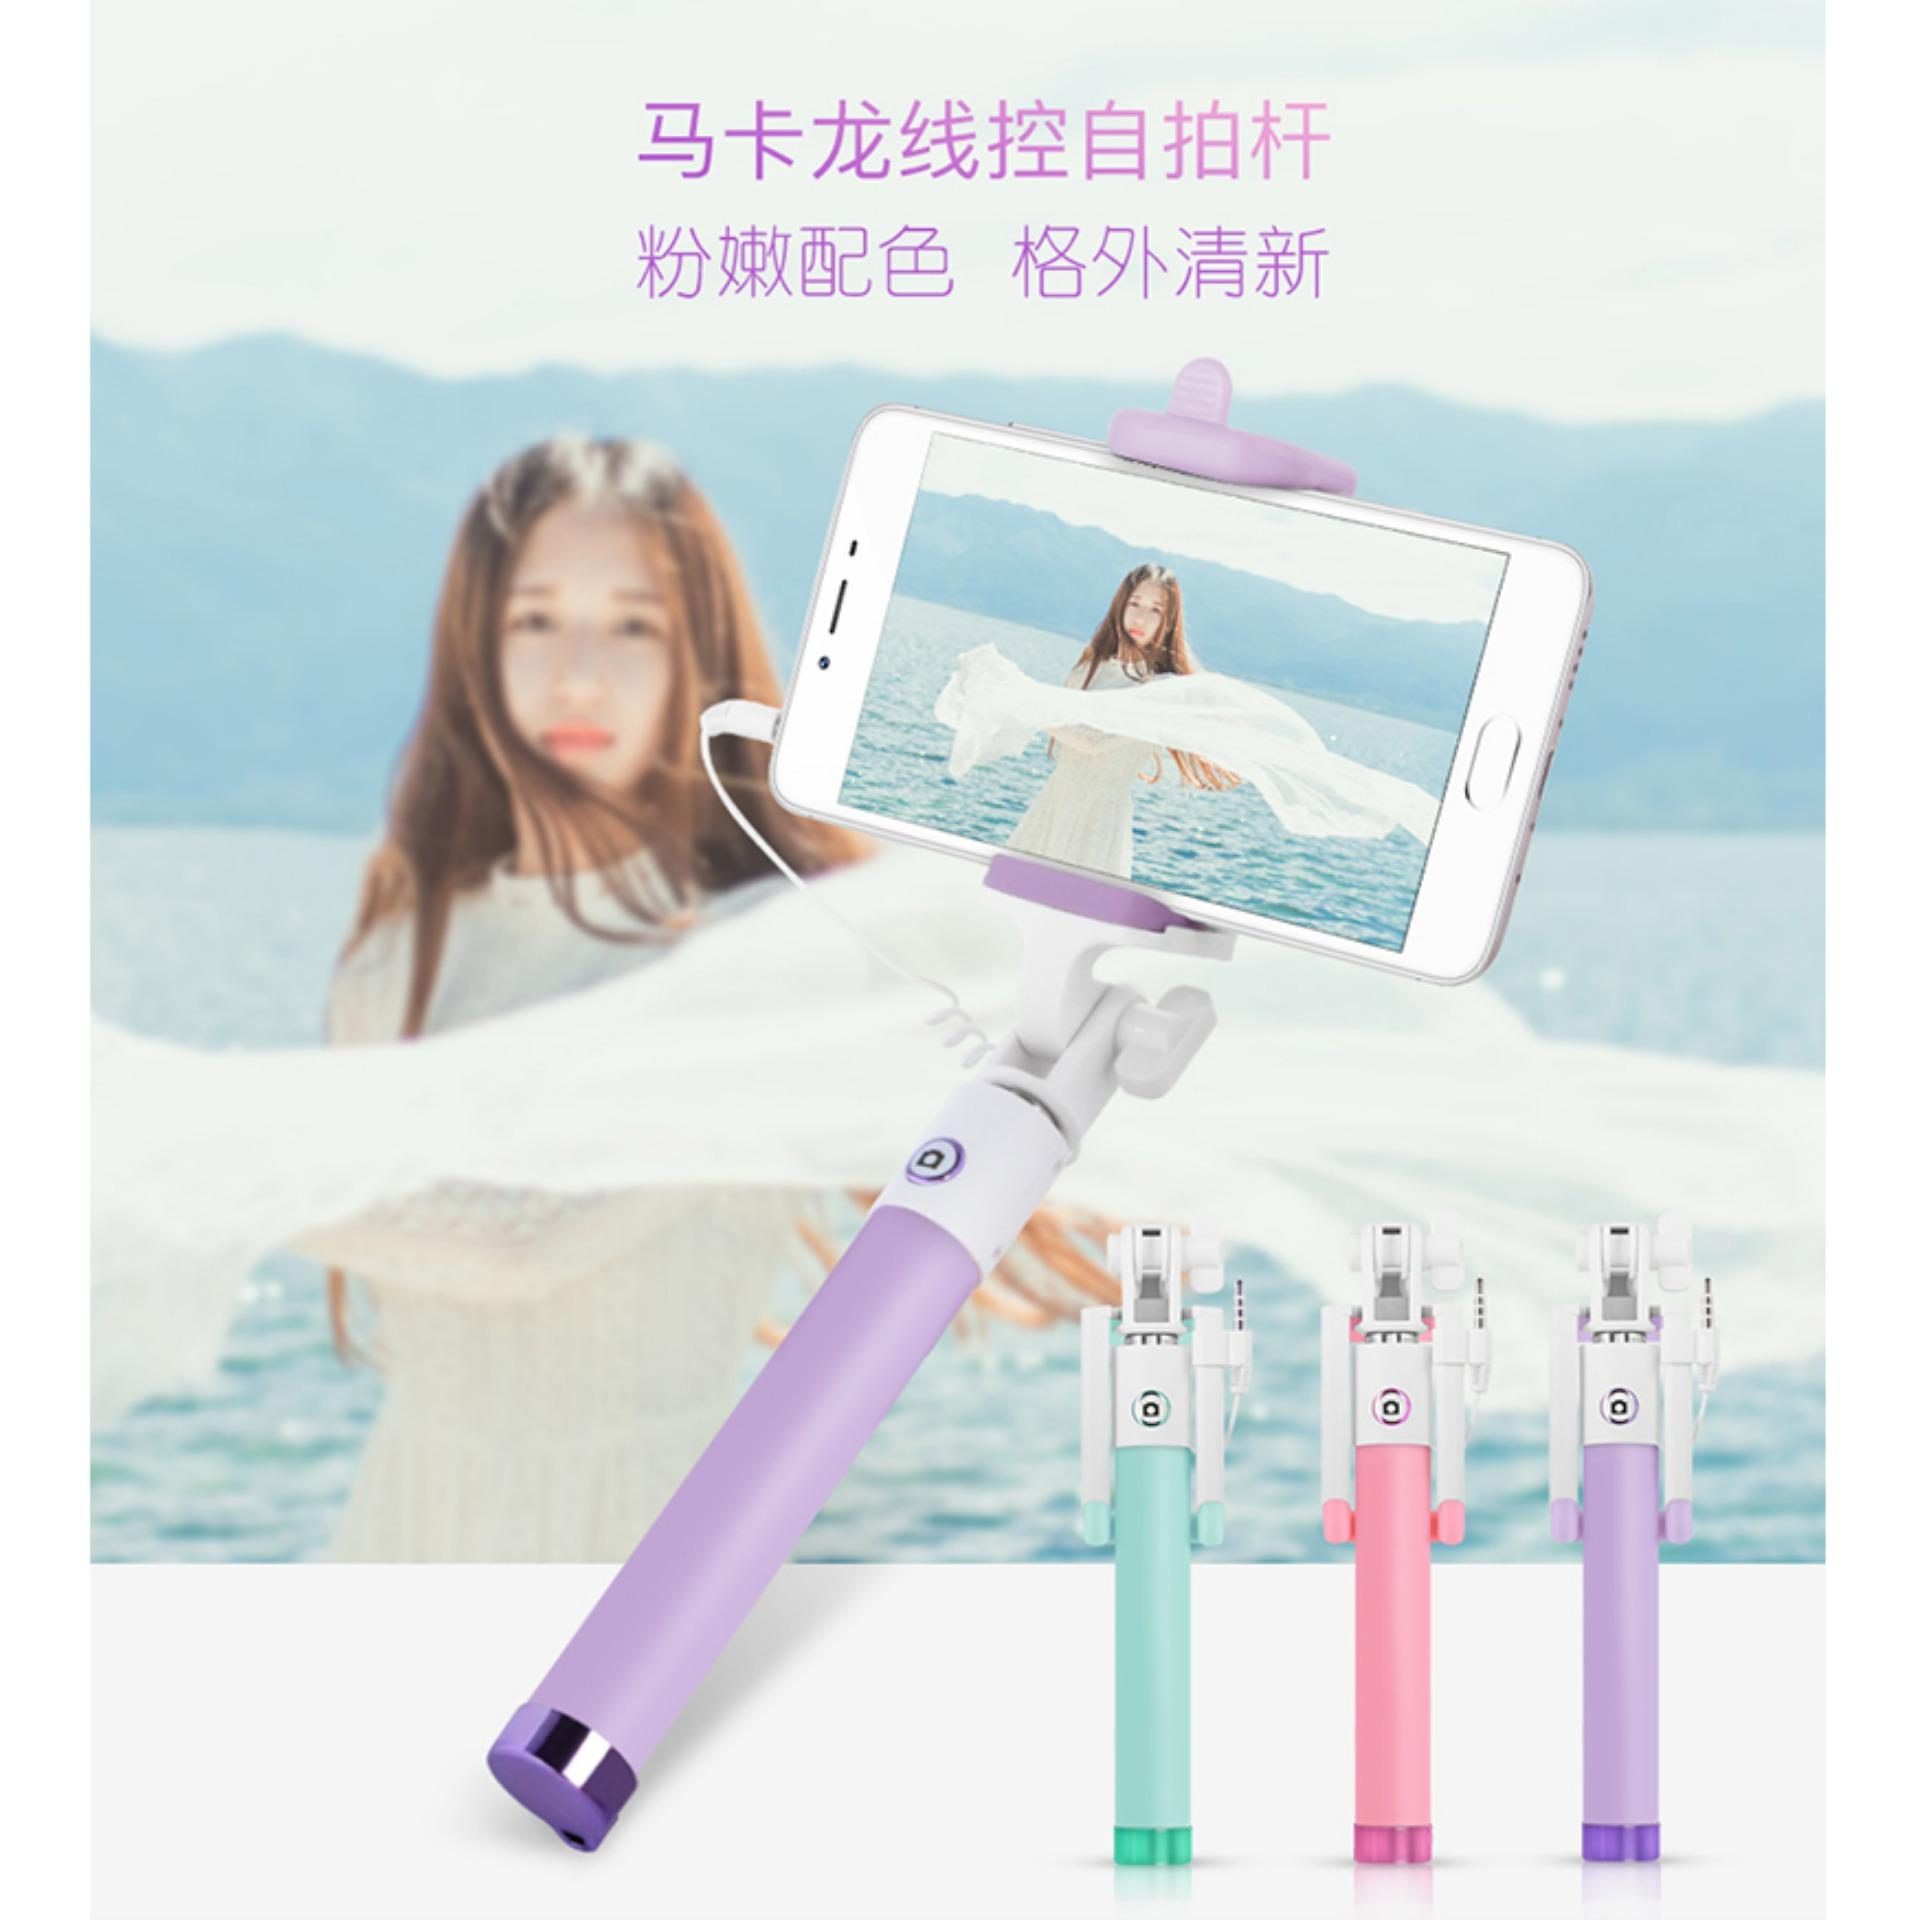 ... X-One Tongsis Monopod Selfie Stick Kabel Lipat ...